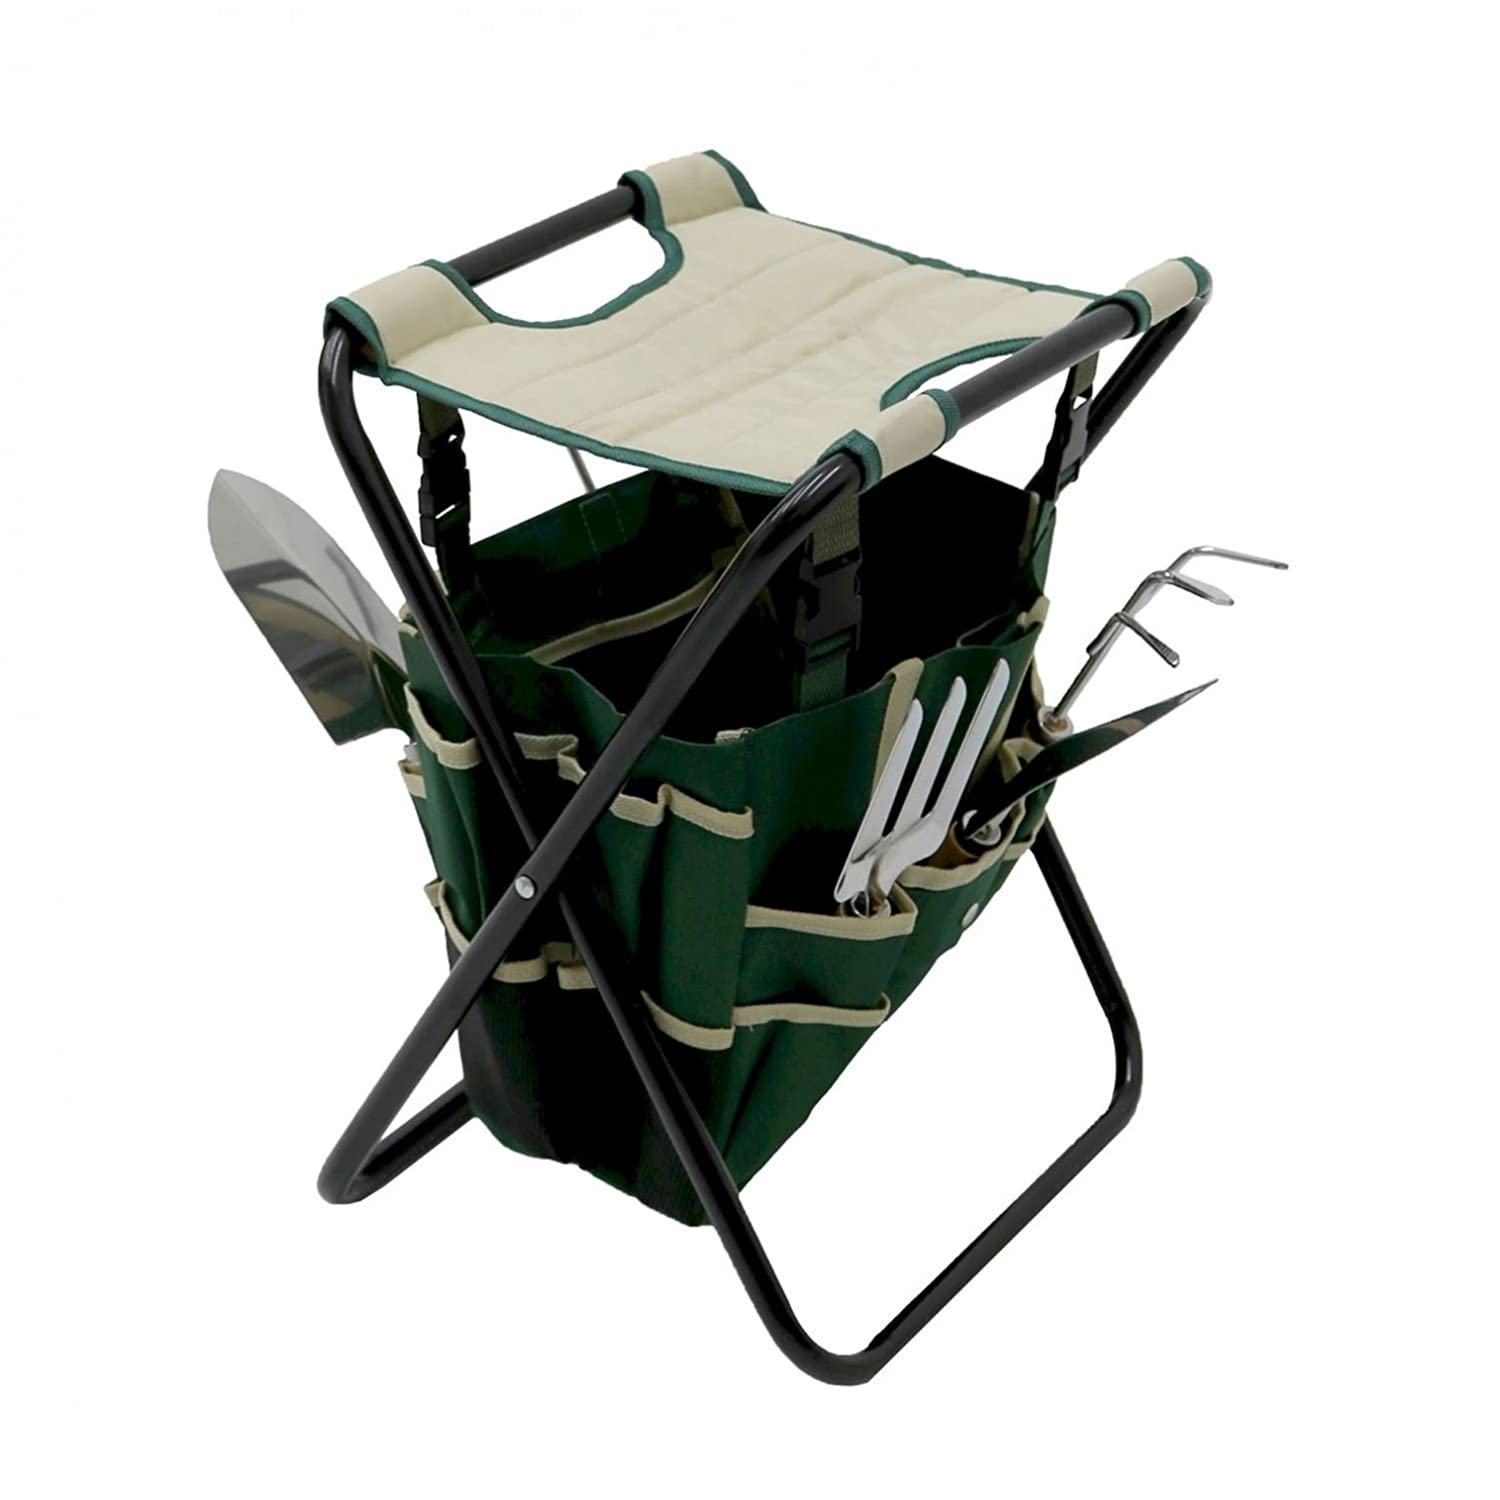 Oypla Folding Gardeners Tool Stool with 5pc Tools and Storage Bag 3857A2P